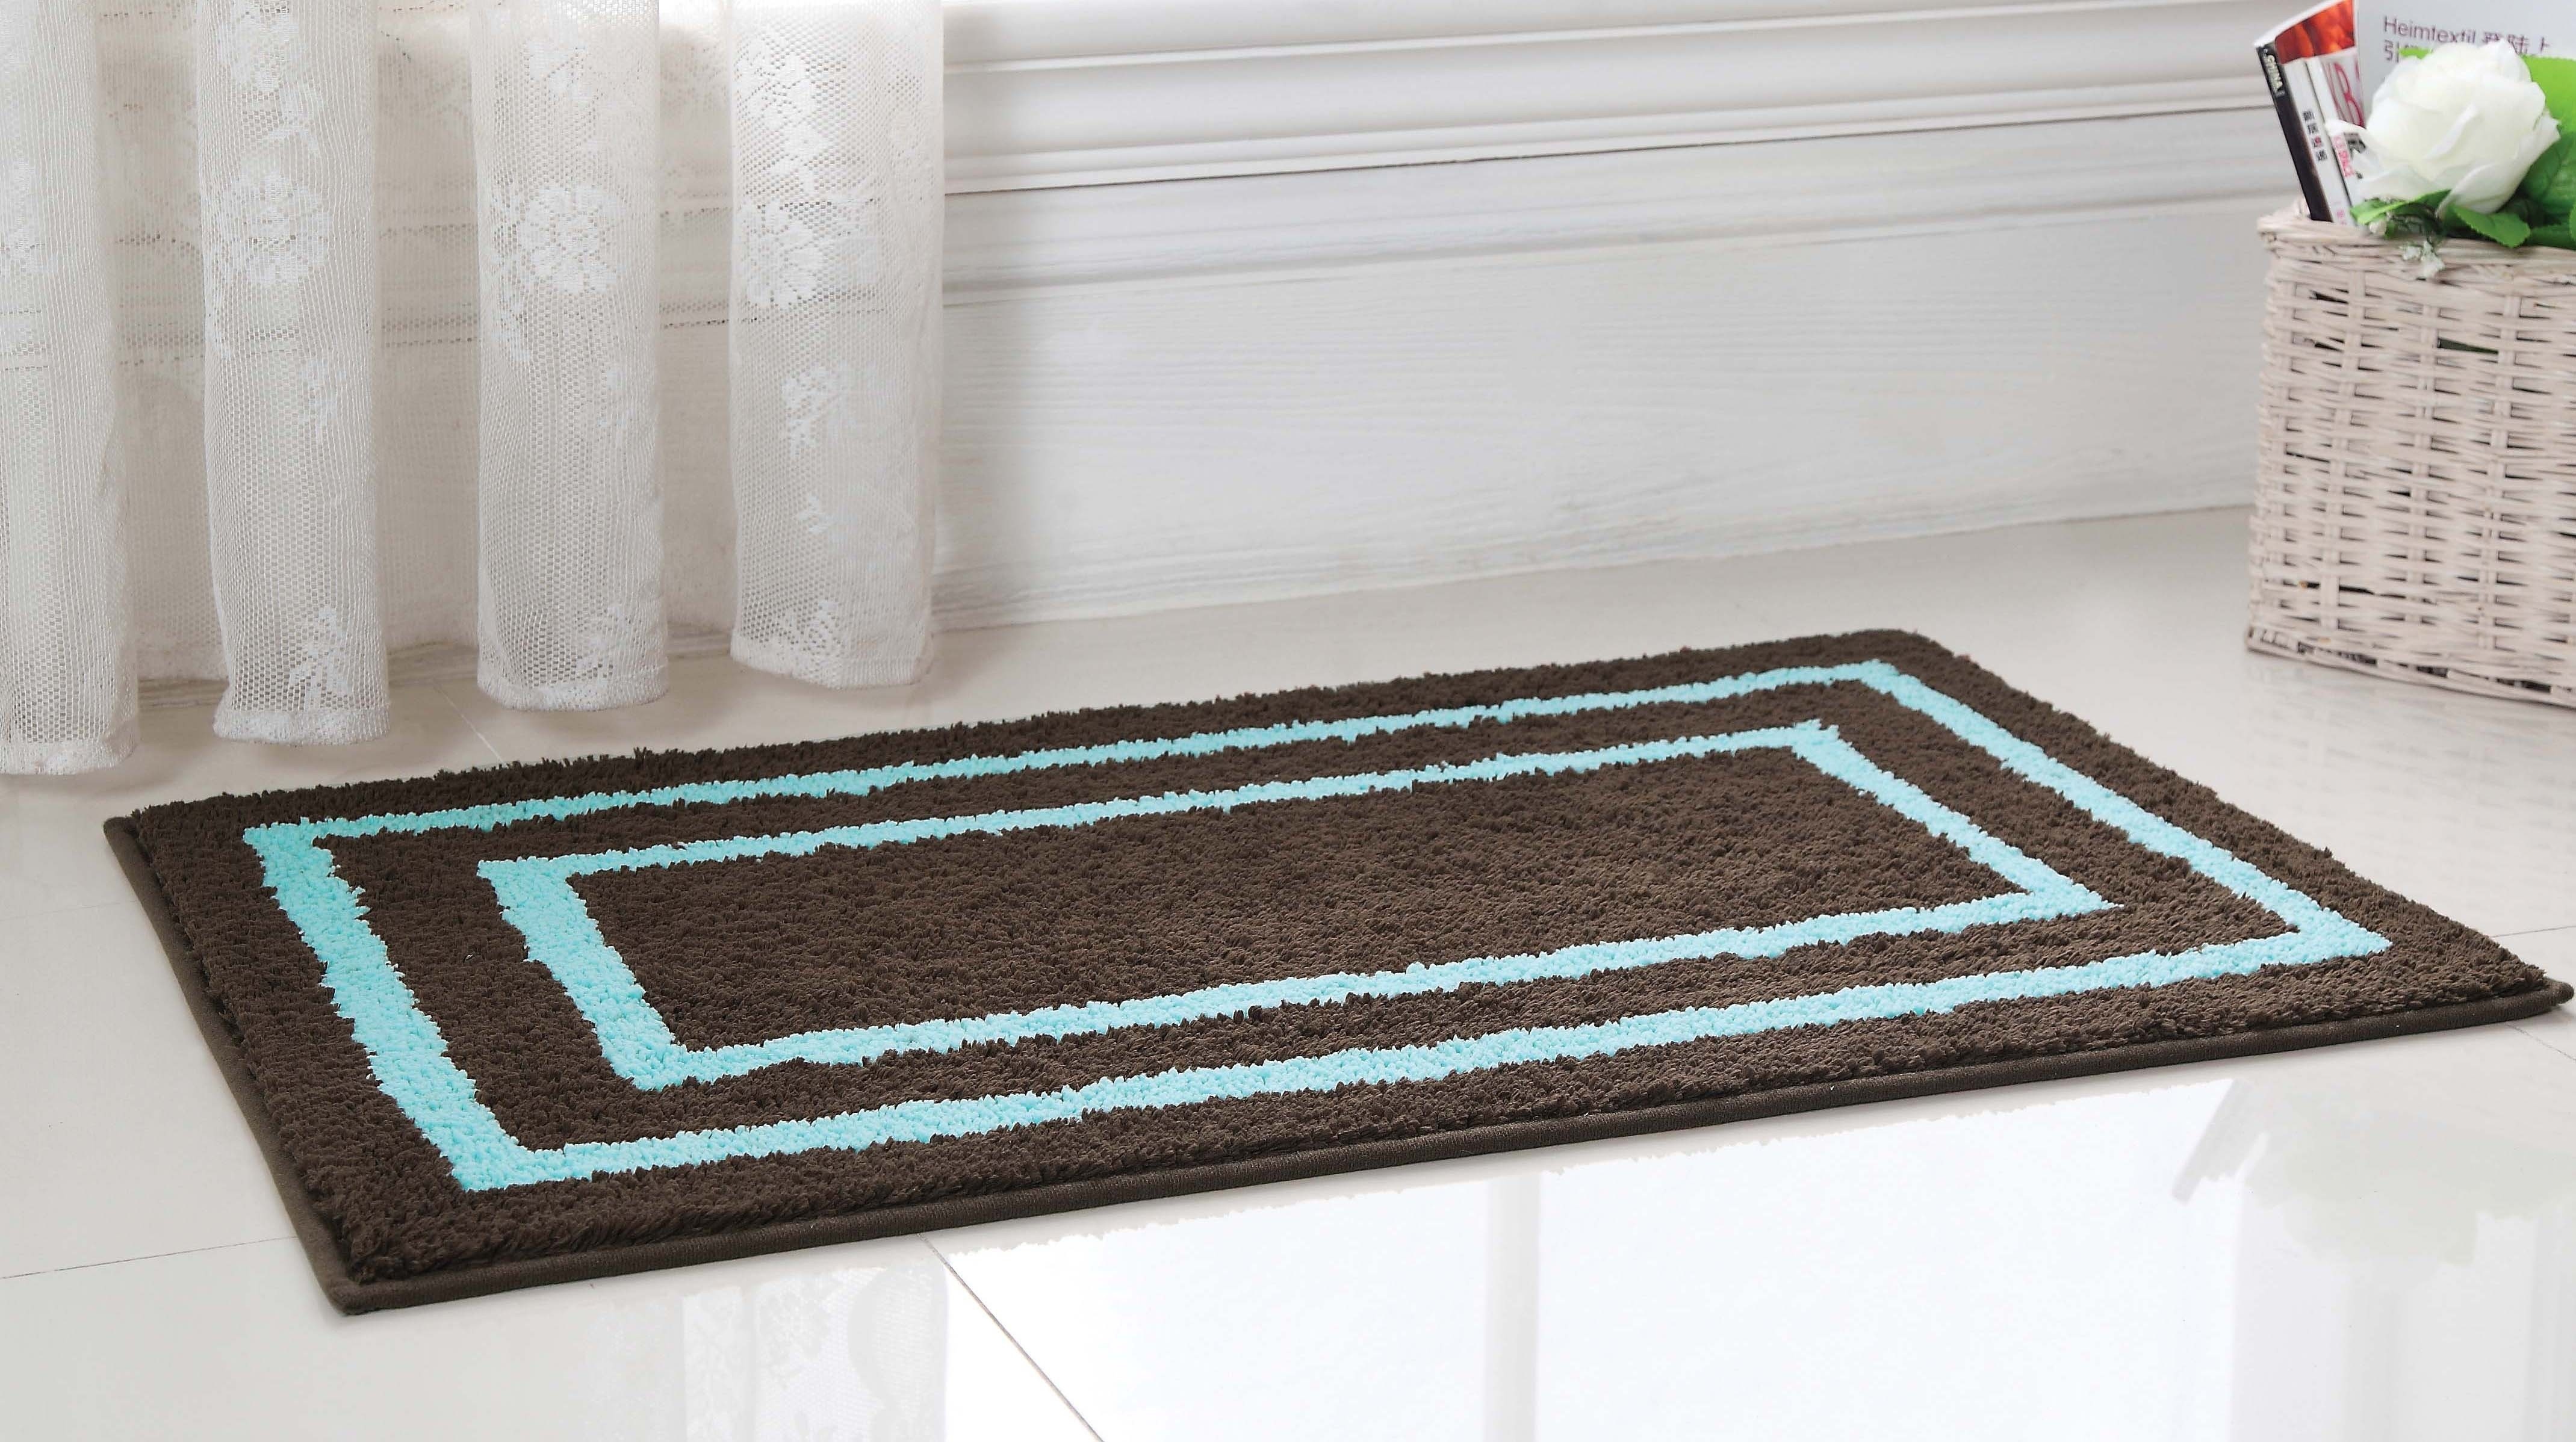 Rubber Backed Bathroom Carpet Bathroom Decoration